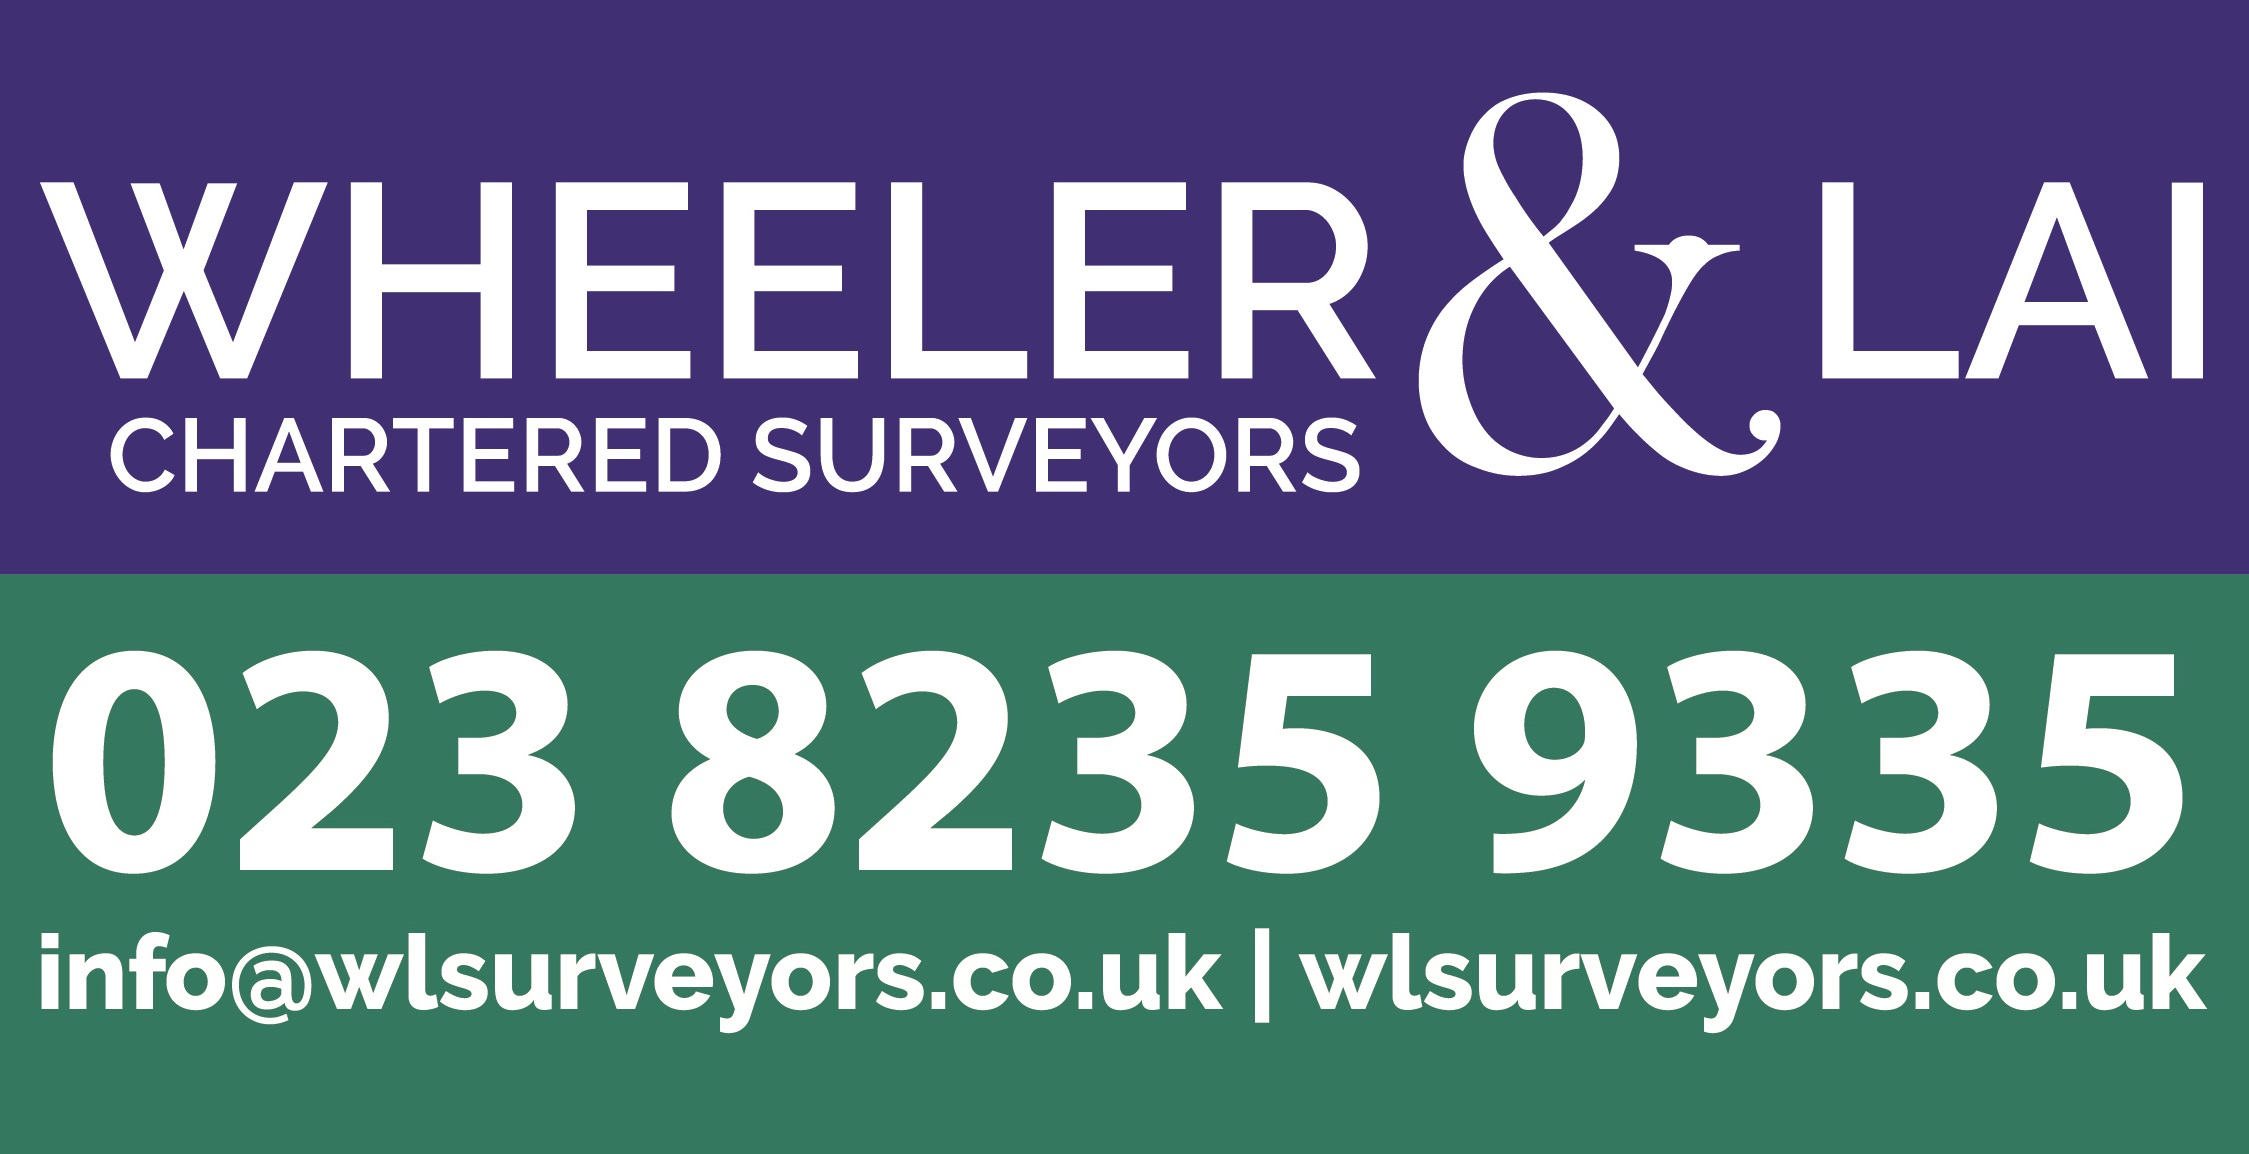 Wheeler & Lai Chartered Surveyors